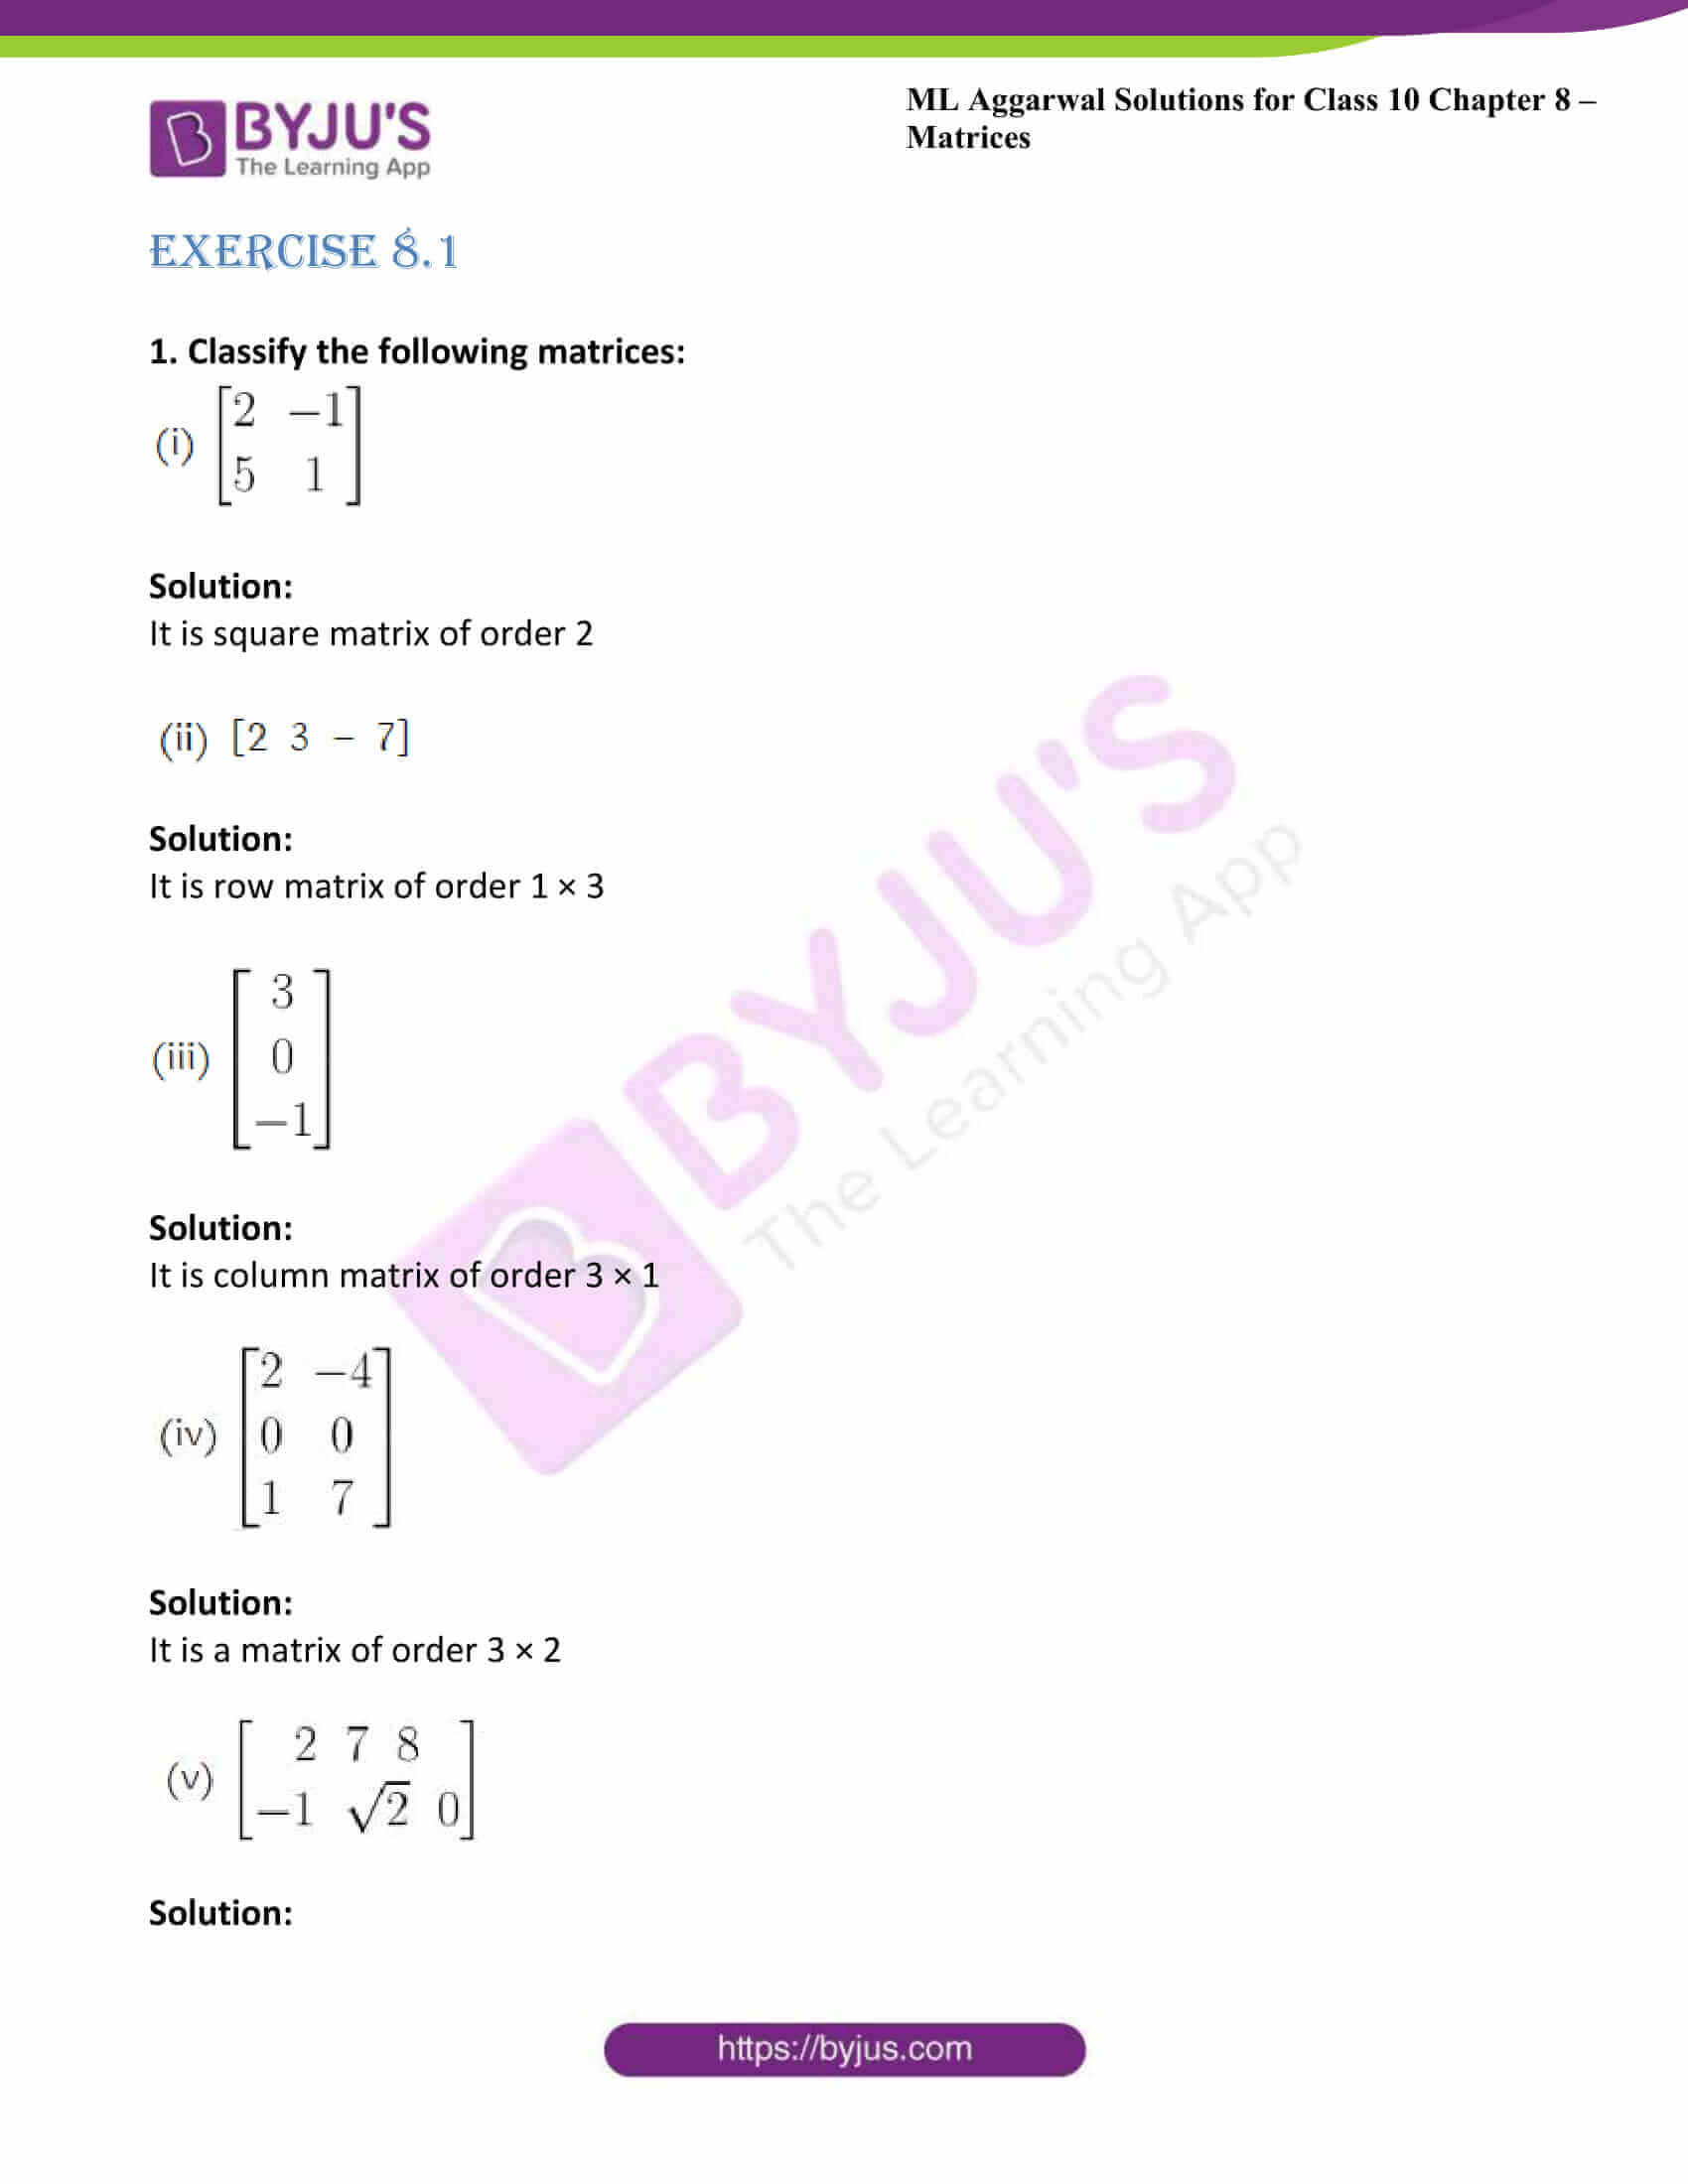 ml aggarwal solutions class 10 maths chapter 8 01